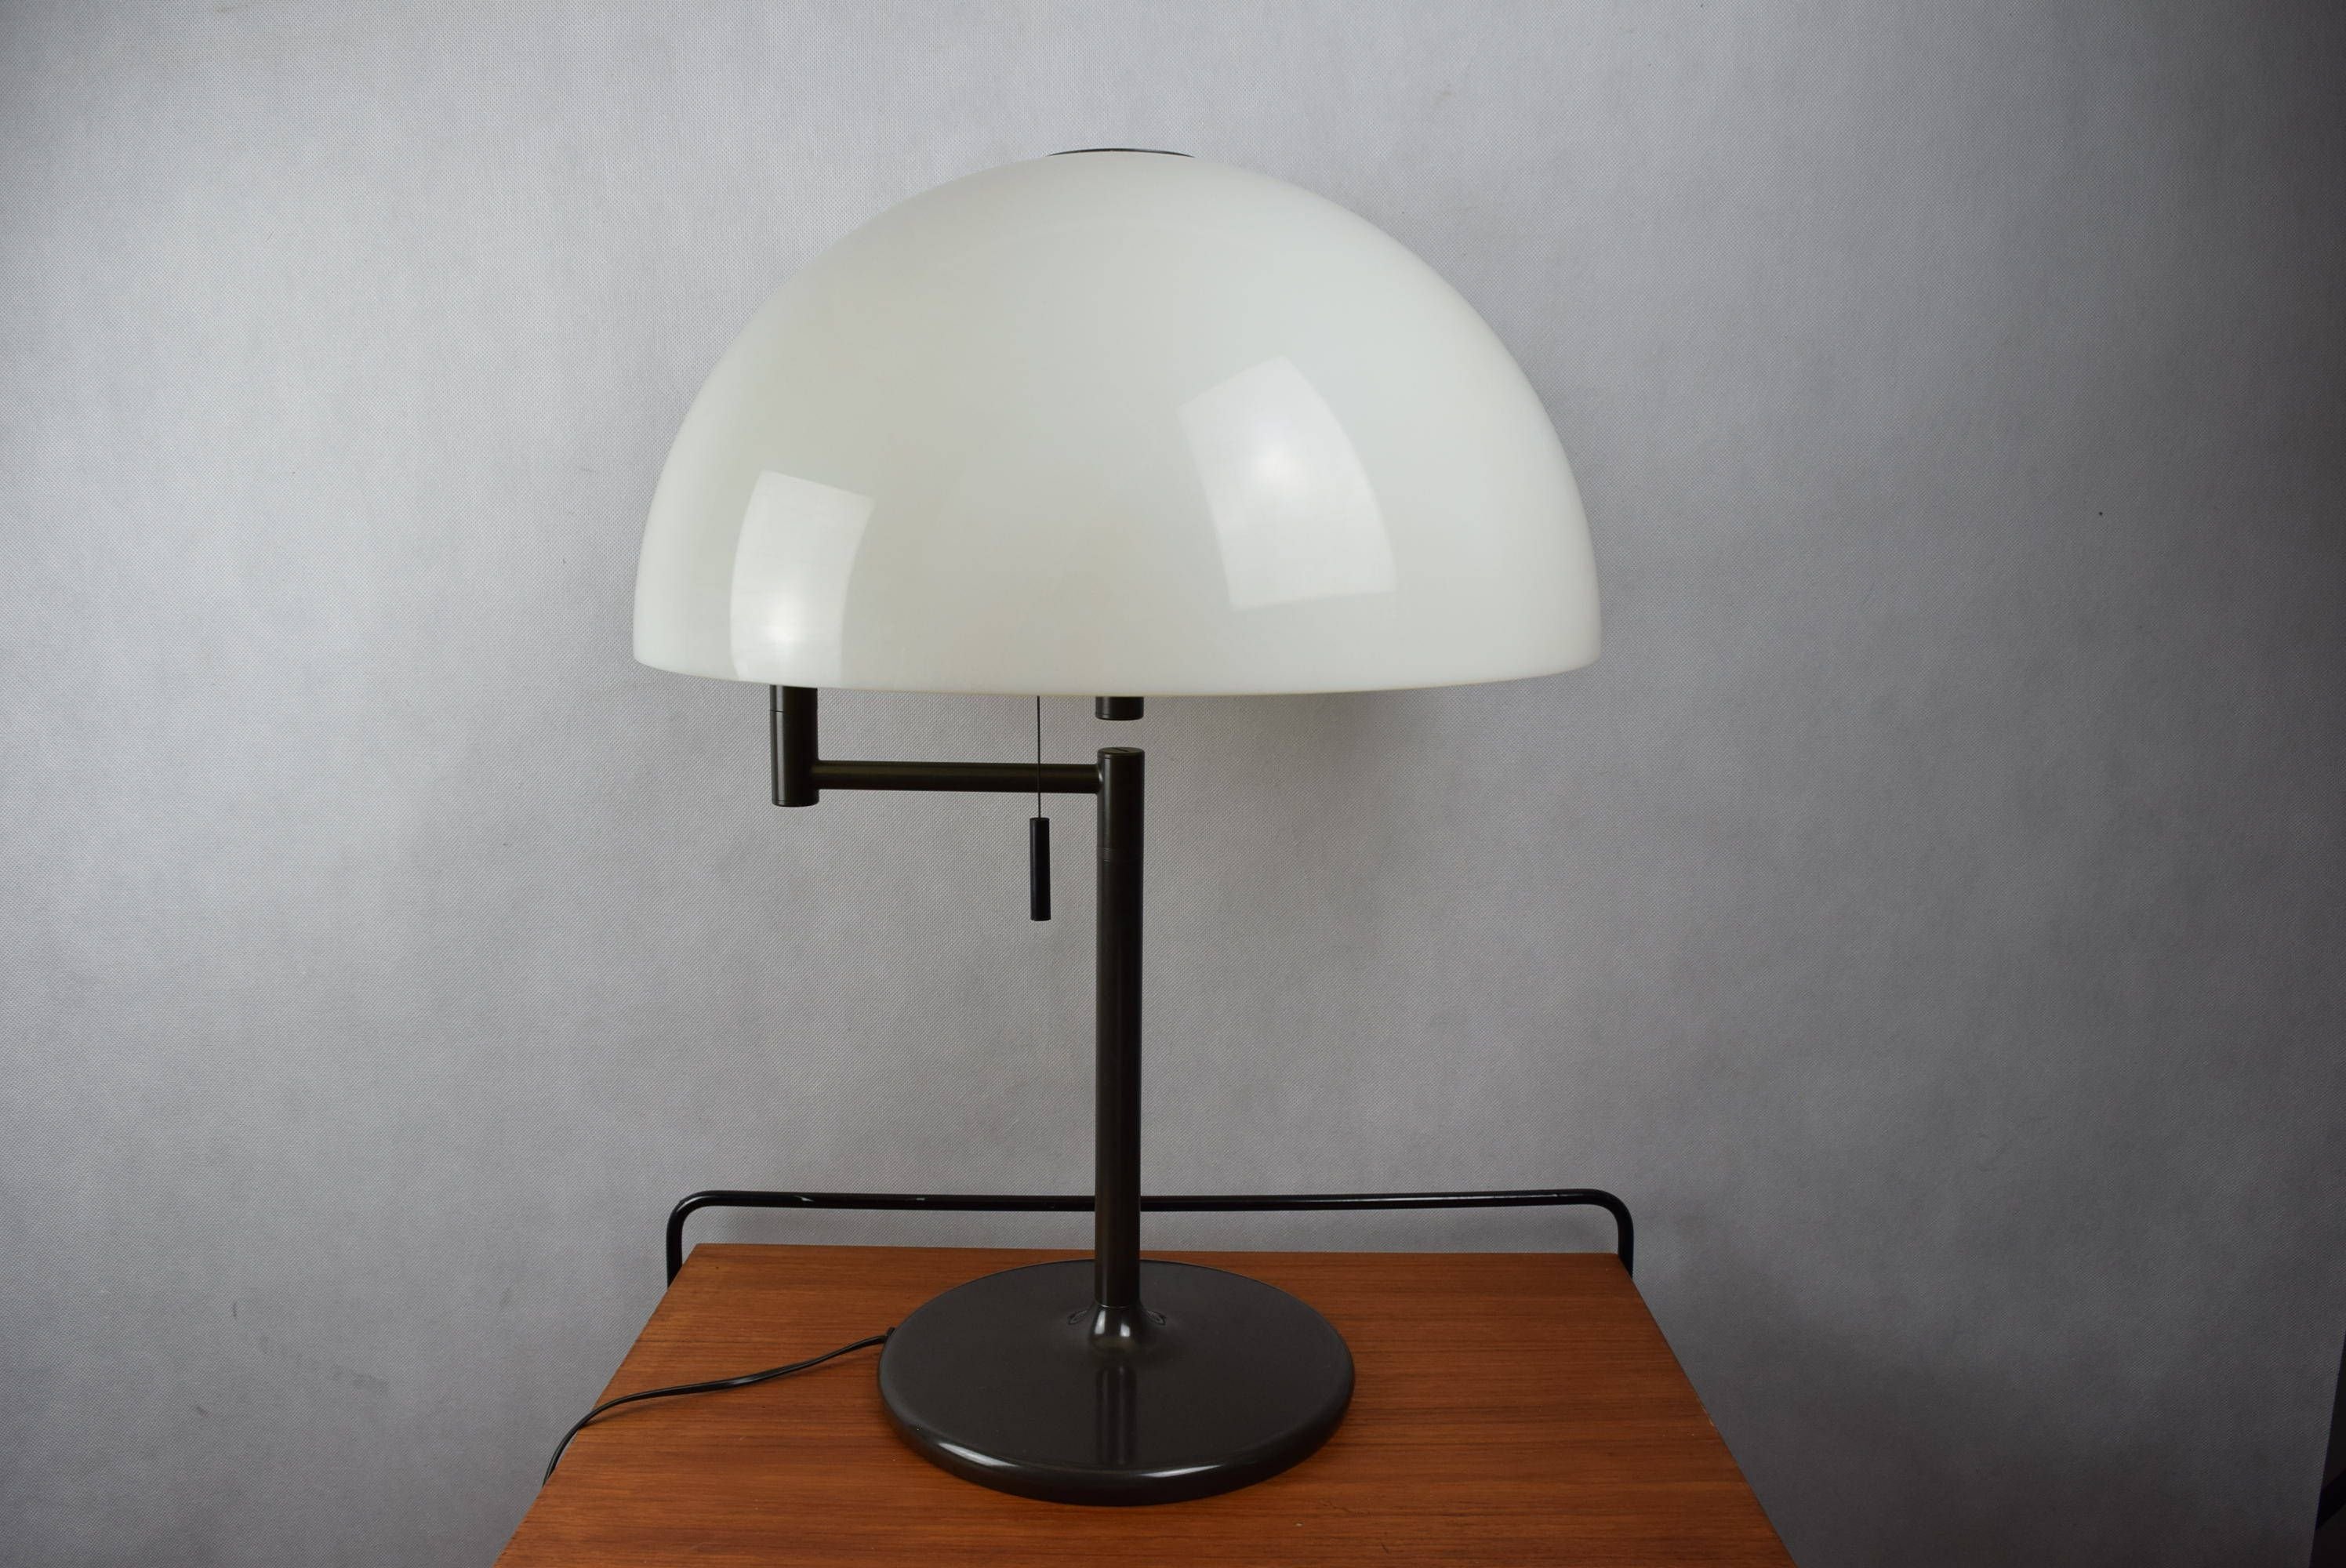 Schlafzimmer Lampe Tischlampe Reserved Original Swiss Mid Century Modern Table Lamp Desk Lamp